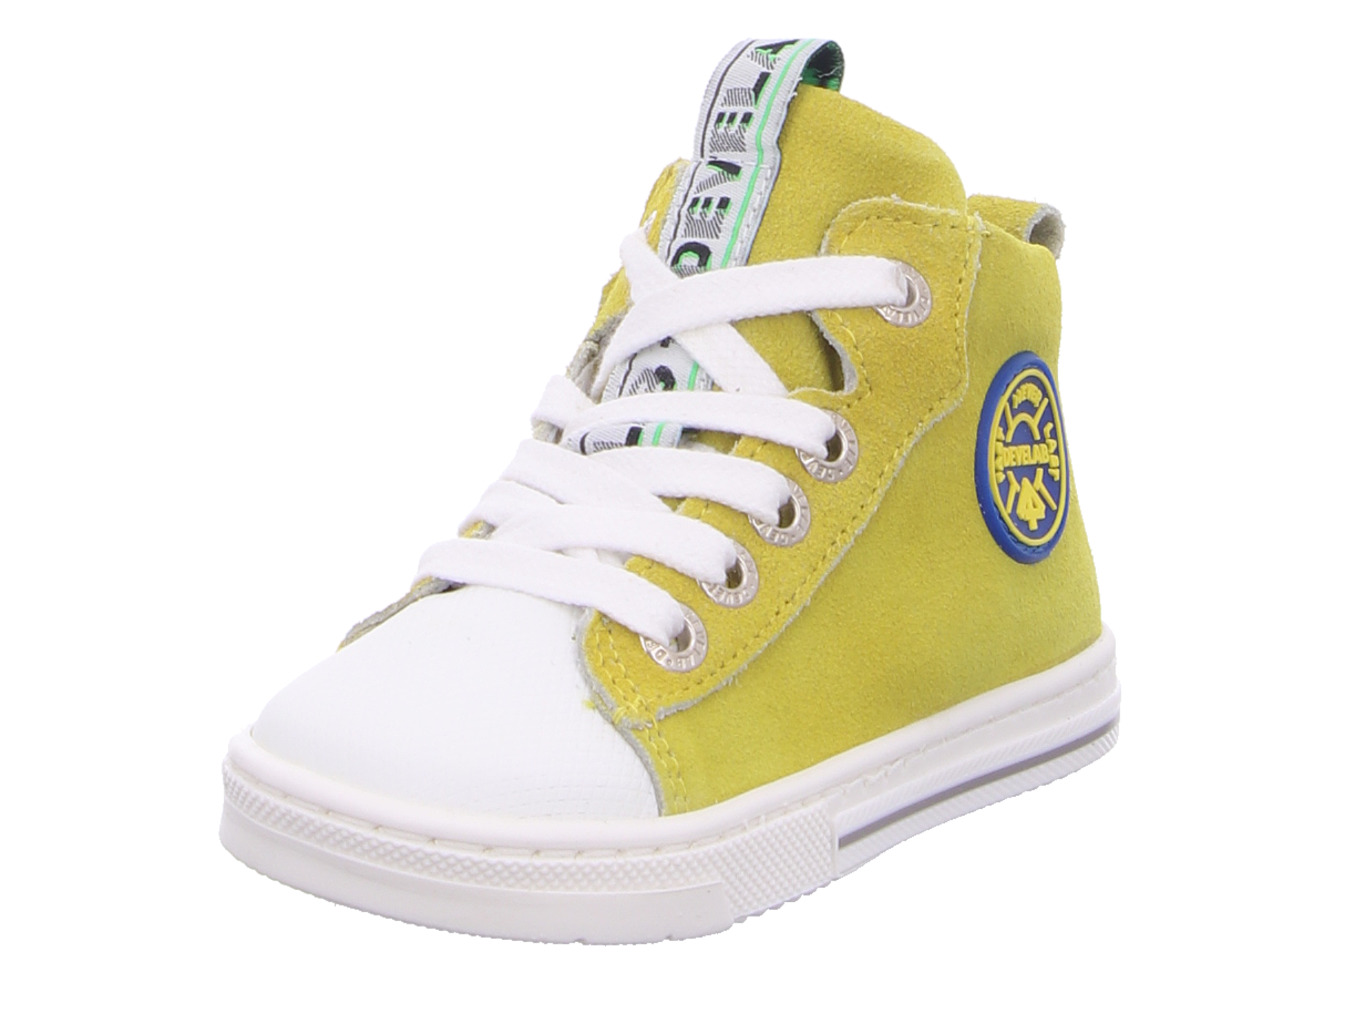 Boys Firststep Mid Cut Laces gelb kombi